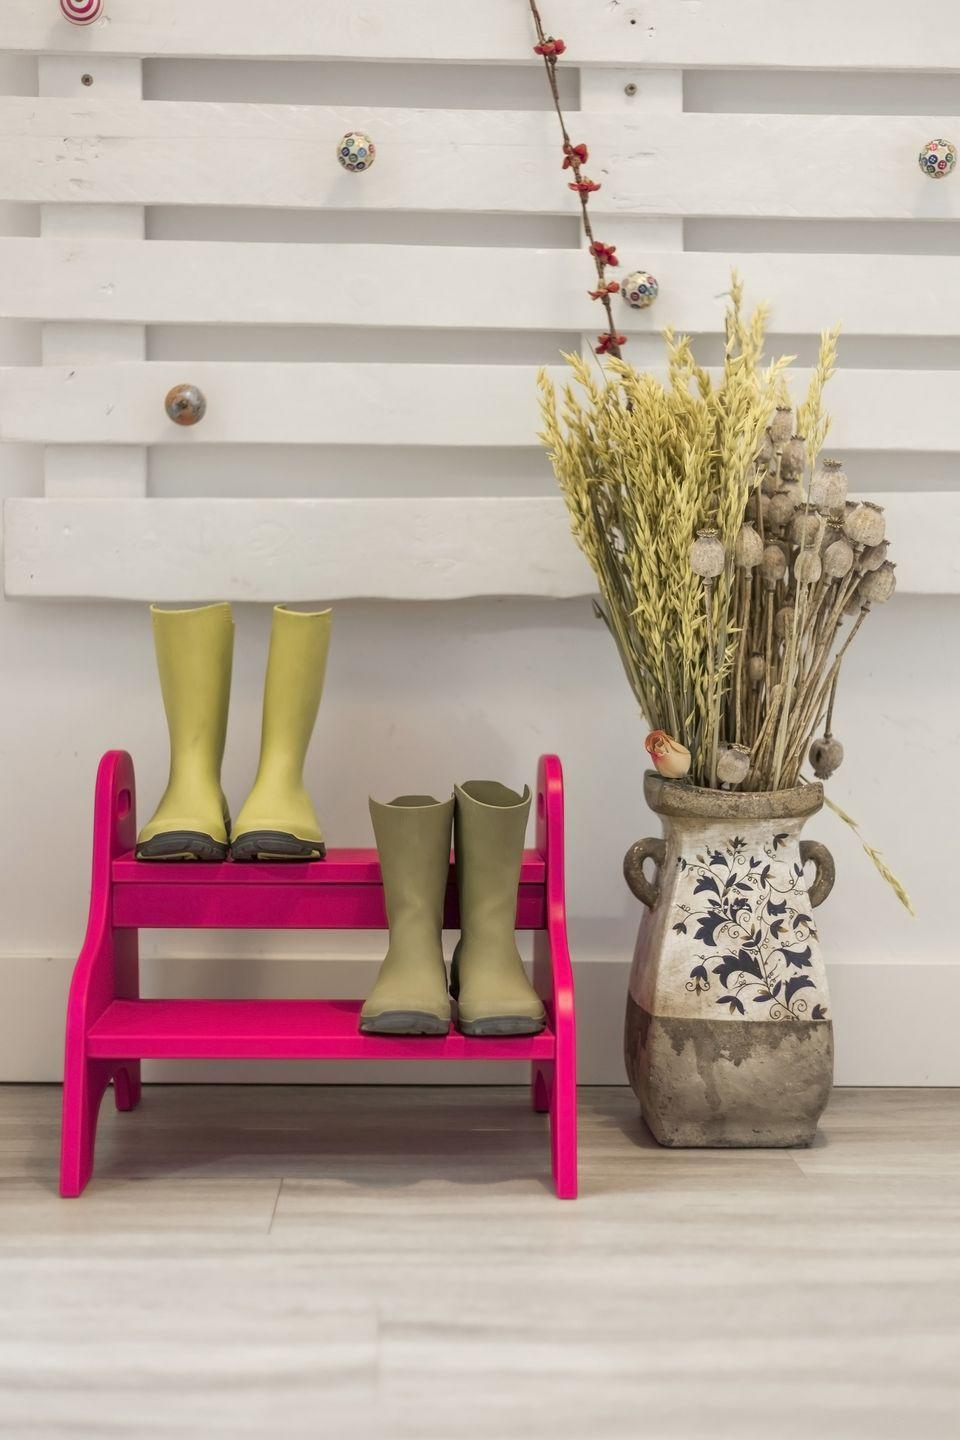 """<p>Leave a cute shoe basket or shelf by the front door (or the<a href=""""https://www.womansday.com/home/decorating/g214/makeover-story-kids-guest-room-115877/"""" rel=""""nofollow noopener"""" target=""""_blank"""" data-ylk=""""slk:kids' bedroom"""" class=""""link rapid-noclick-resp""""> kids' bedroom</a> doors) to avoid those excruciatingly long searches through the house.</p><p><strong><a class=""""link rapid-noclick-resp"""" href=""""https://www.amazon.com/SONGMICS-Organizer-Entryway-Bathroom-ULBS04N/dp/B00NL8NB6S/?tag=syn-yahoo-20&ascsubtag=%5Bartid%7C10070.g.3310%5Bsrc%7Cyahoo-us"""" rel=""""nofollow noopener"""" target=""""_blank"""" data-ylk=""""slk:SHOP SHOE RACKS"""">SHOP SHOE RACKS</a></strong></p>"""